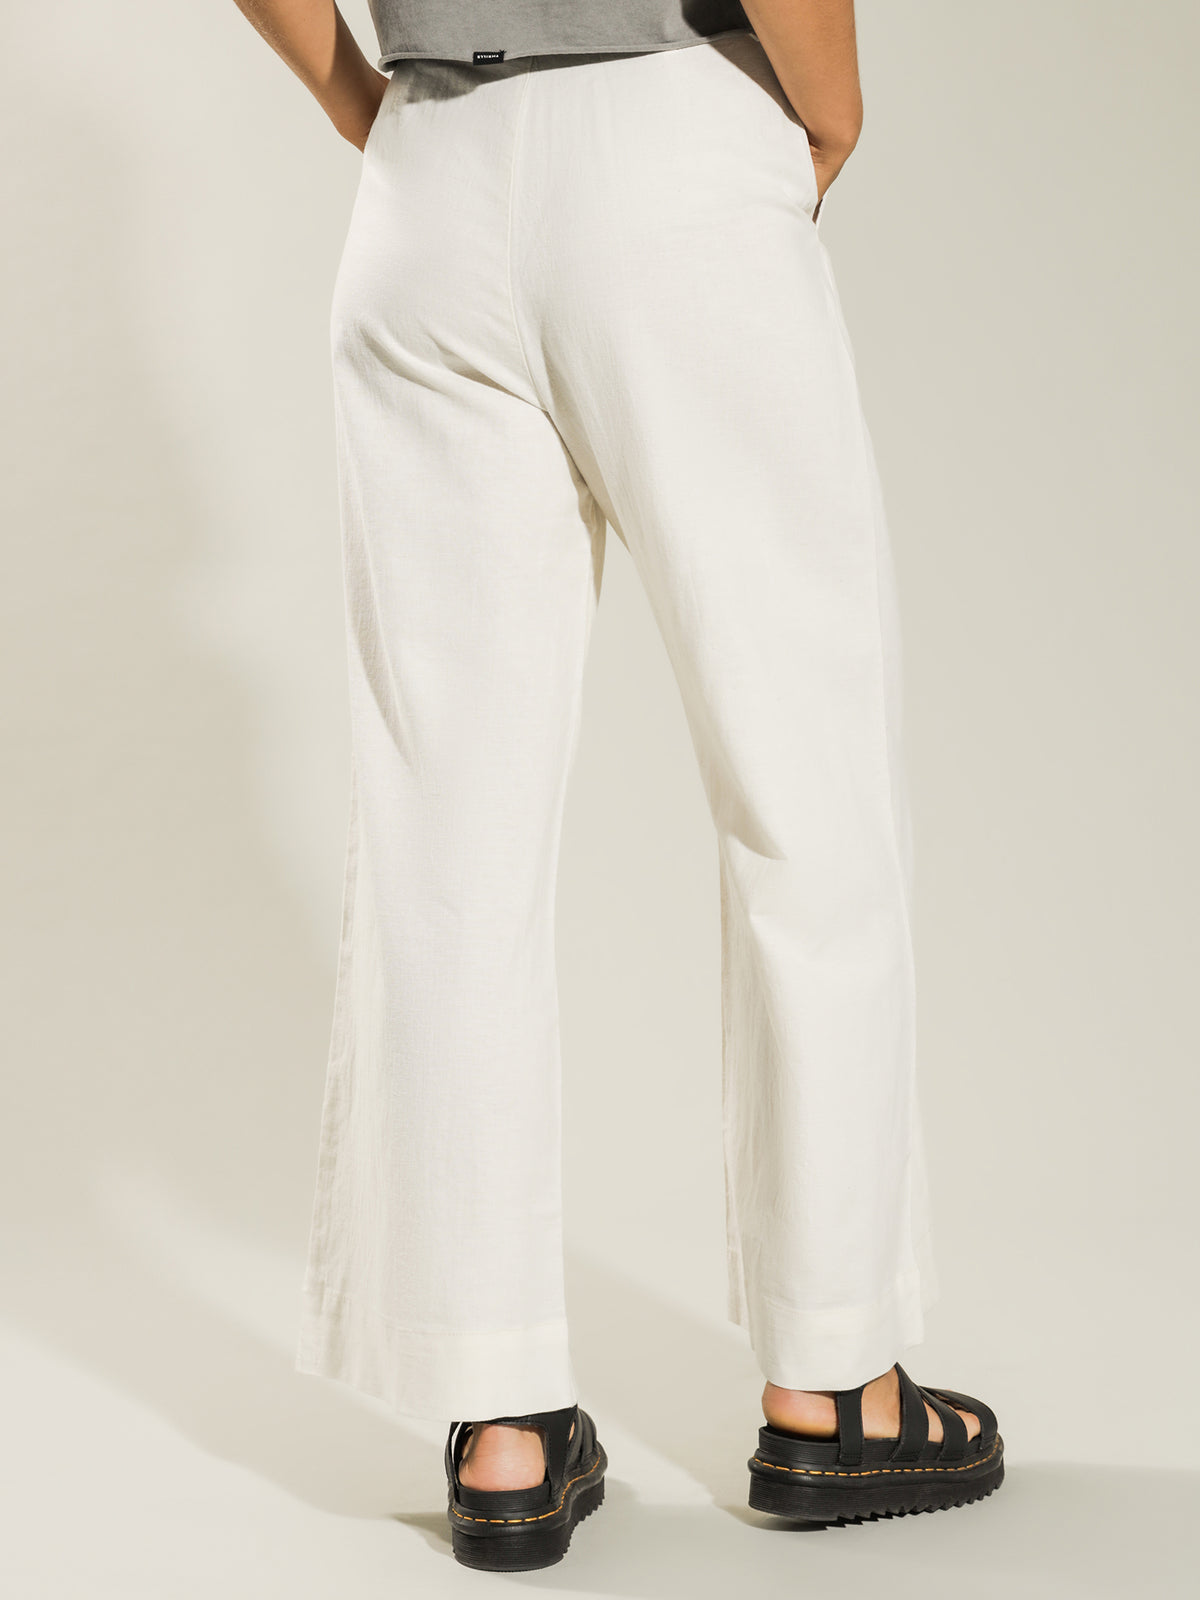 Artist Pants in Heritage White